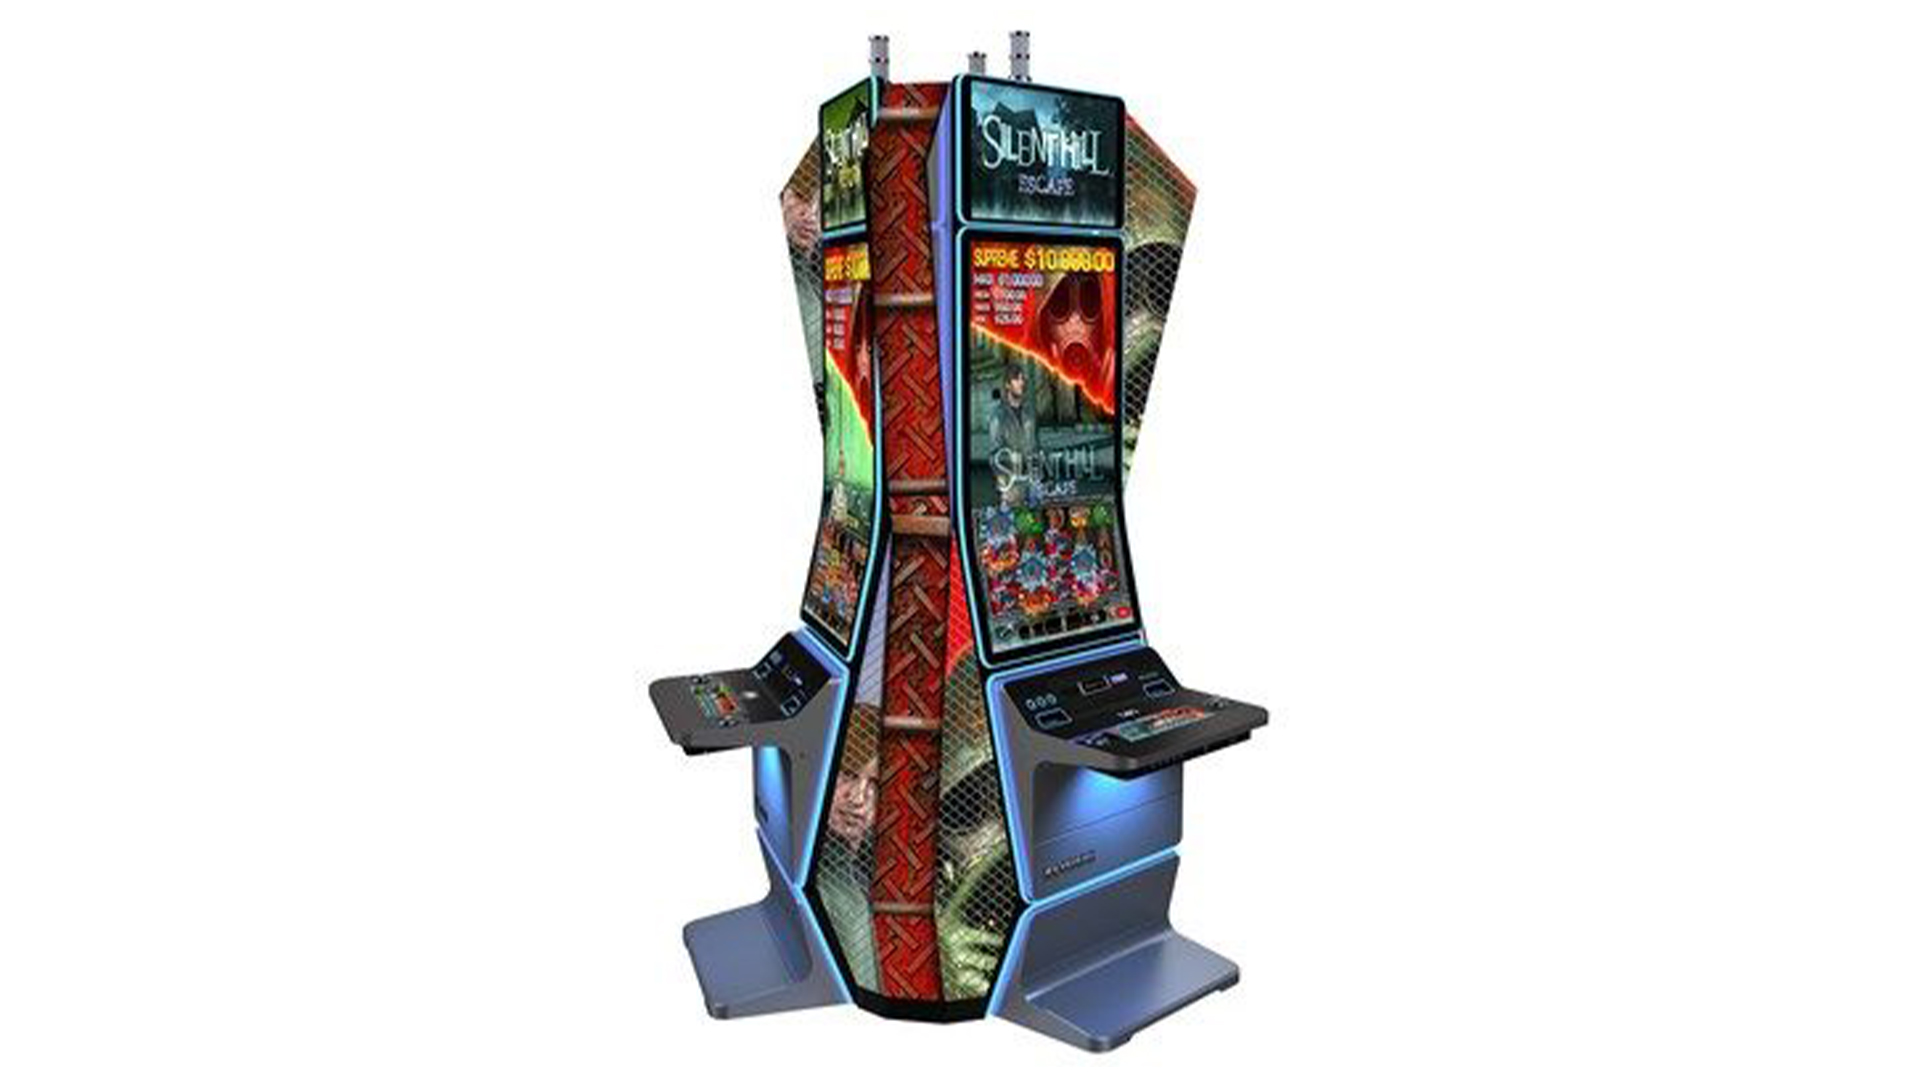 Reality is now content to parody itself, so Konami announces a Silent Hill slot machine